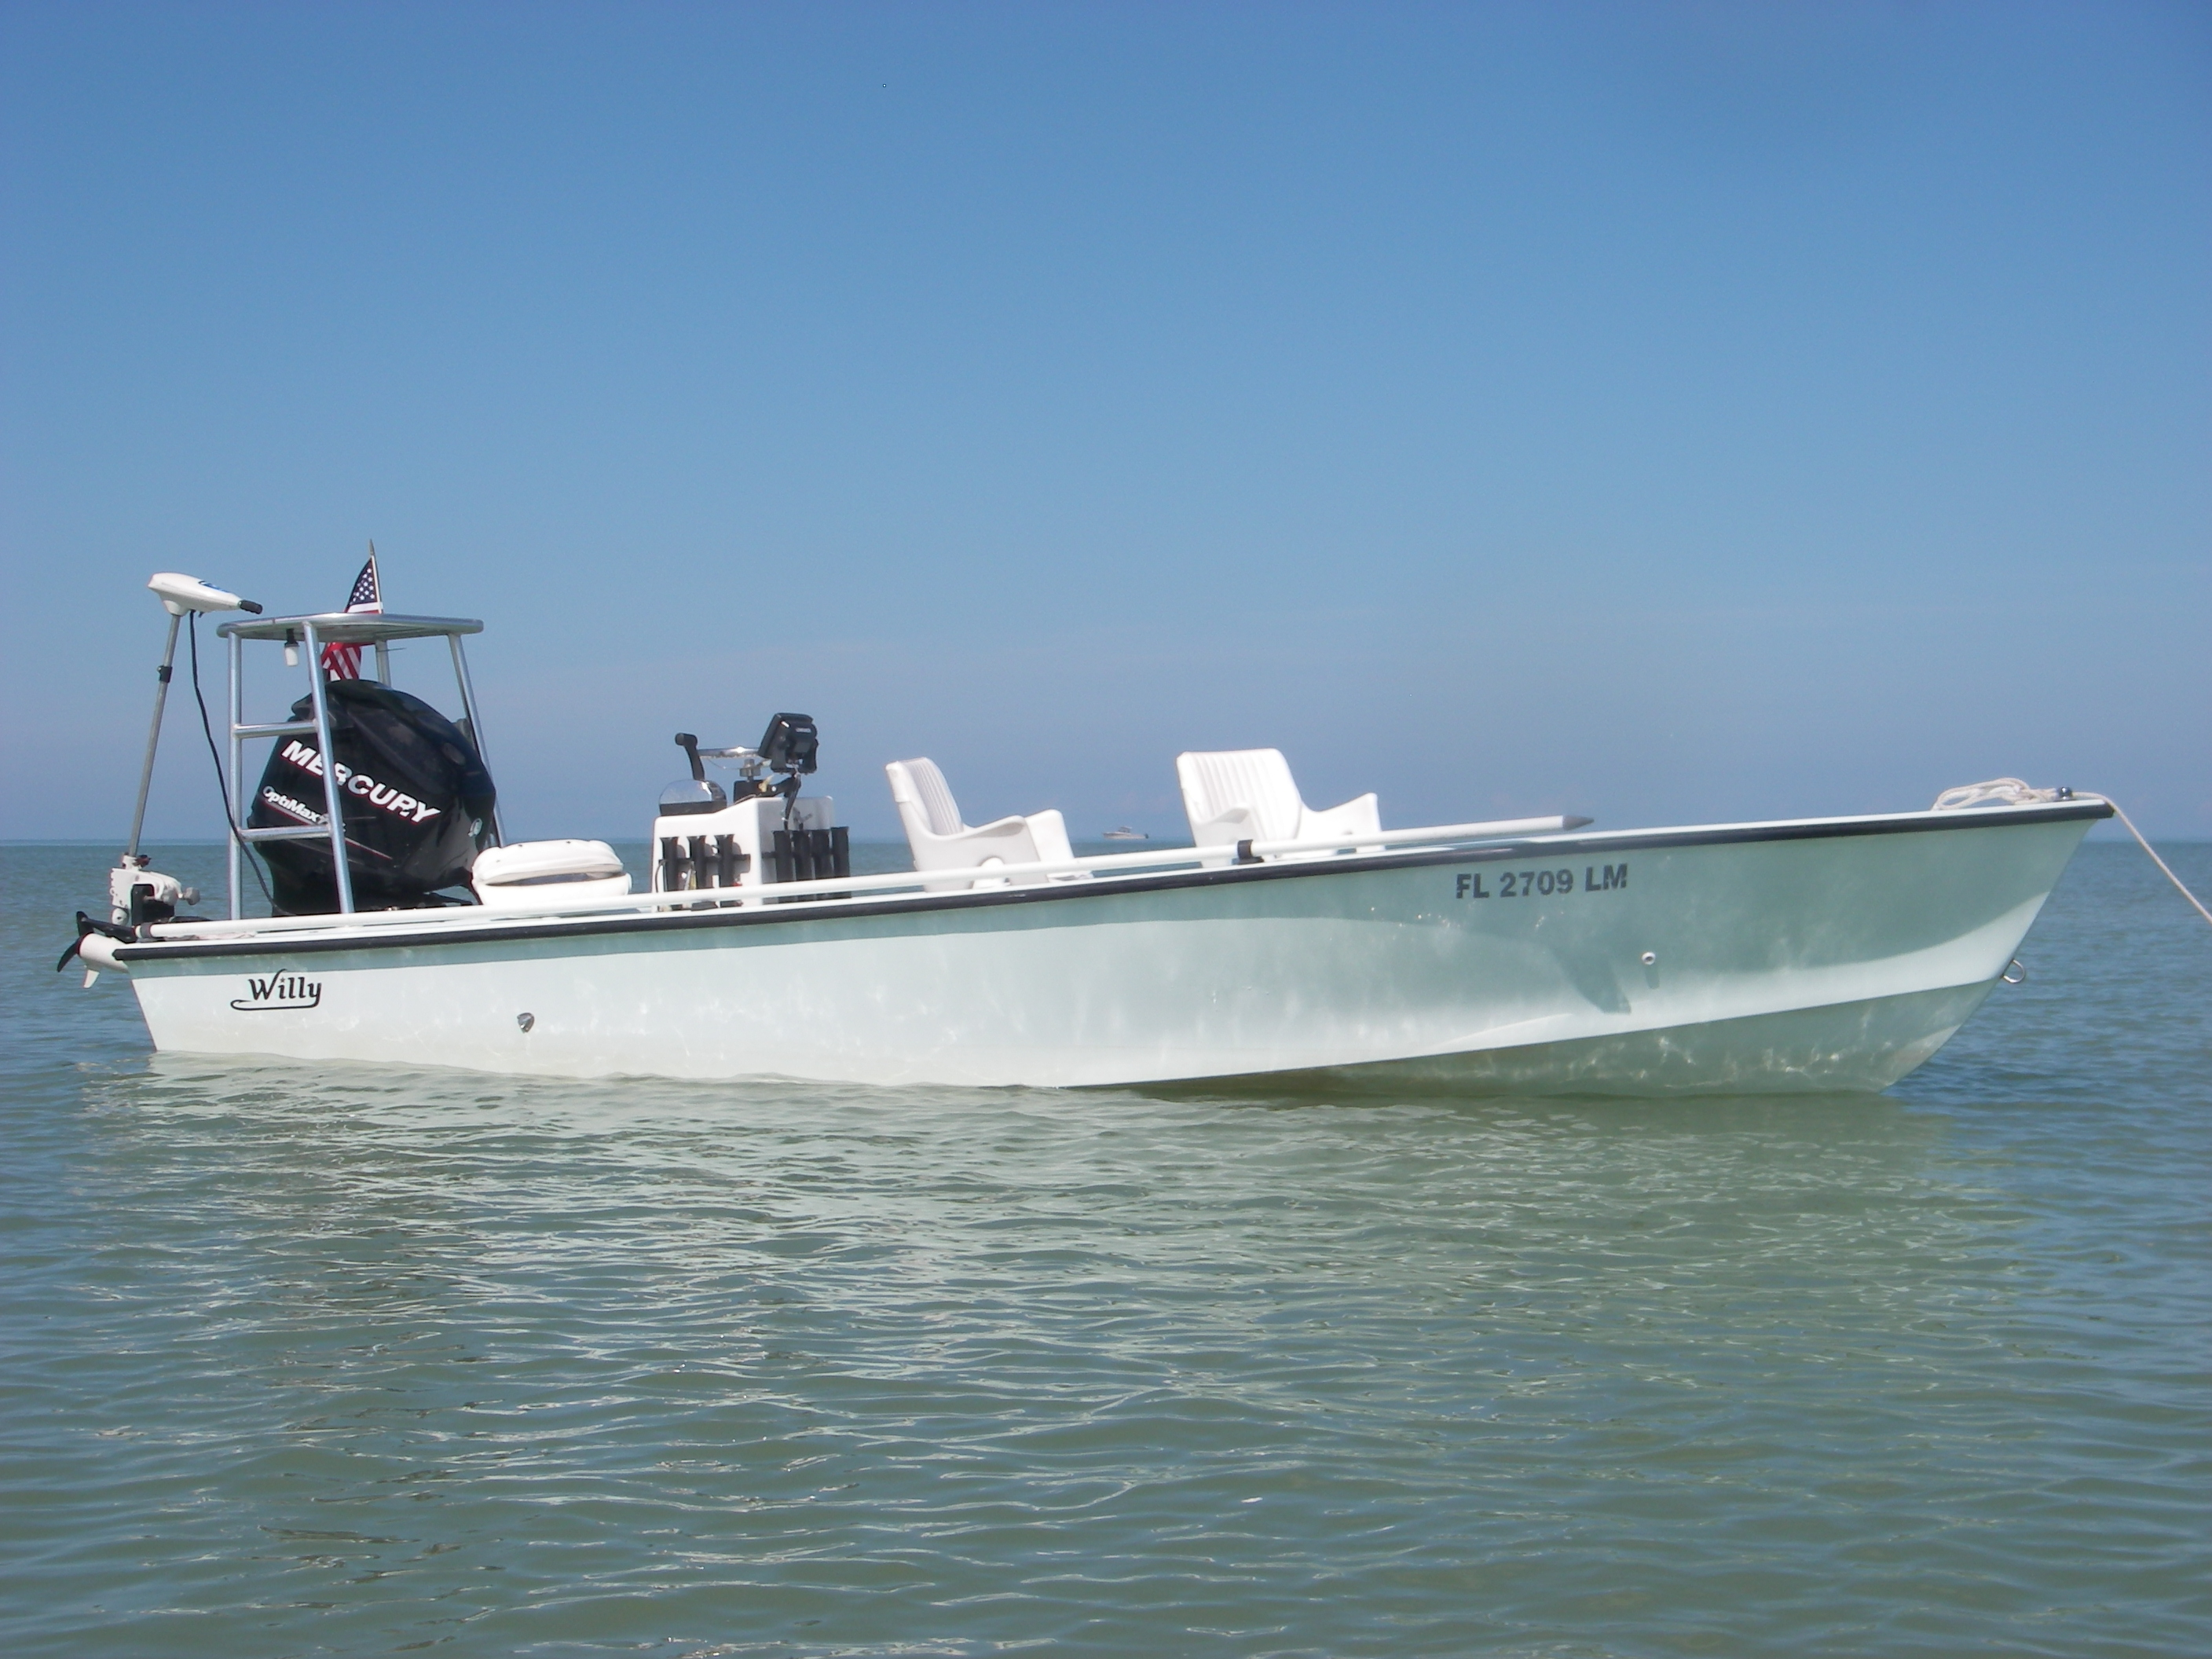 Willy boat fishing charters and boat tours in naples for Fishing charters naples fl